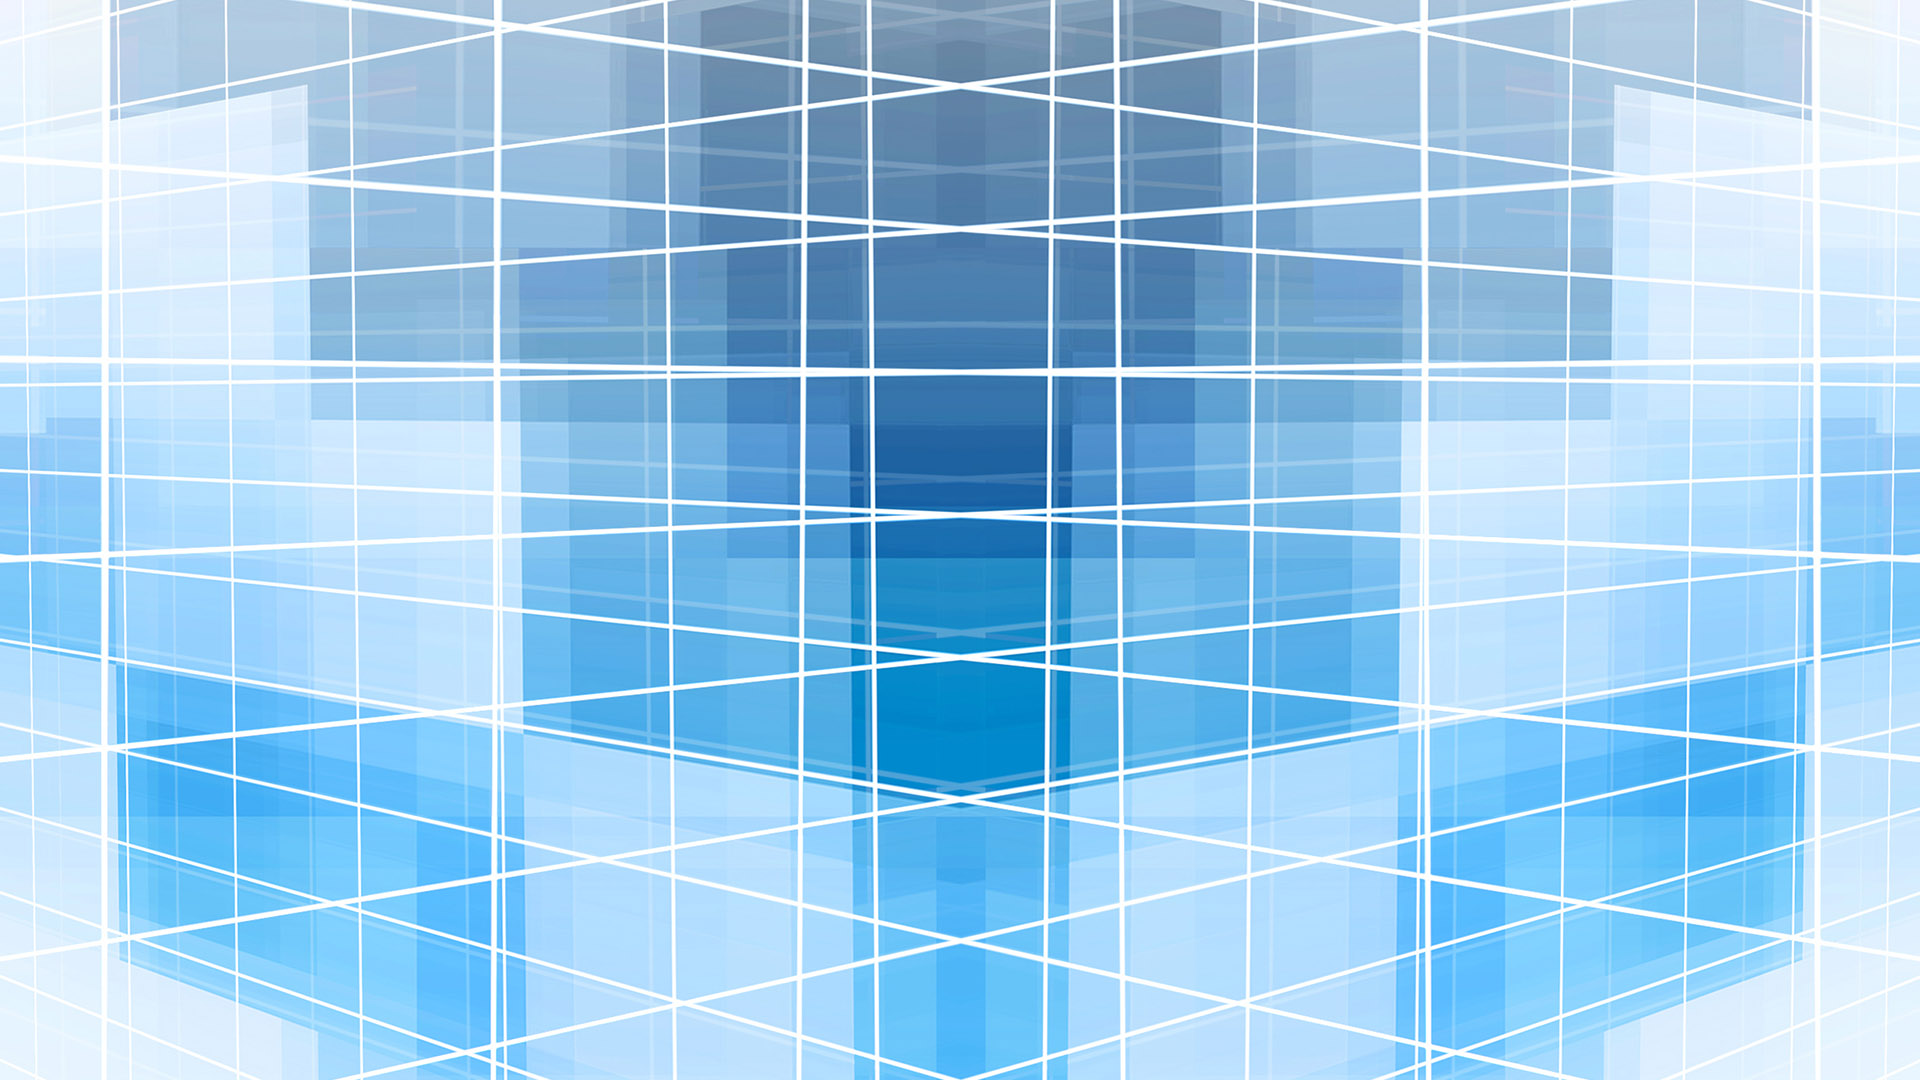 Overlapping white lines in a grid against a blue background.